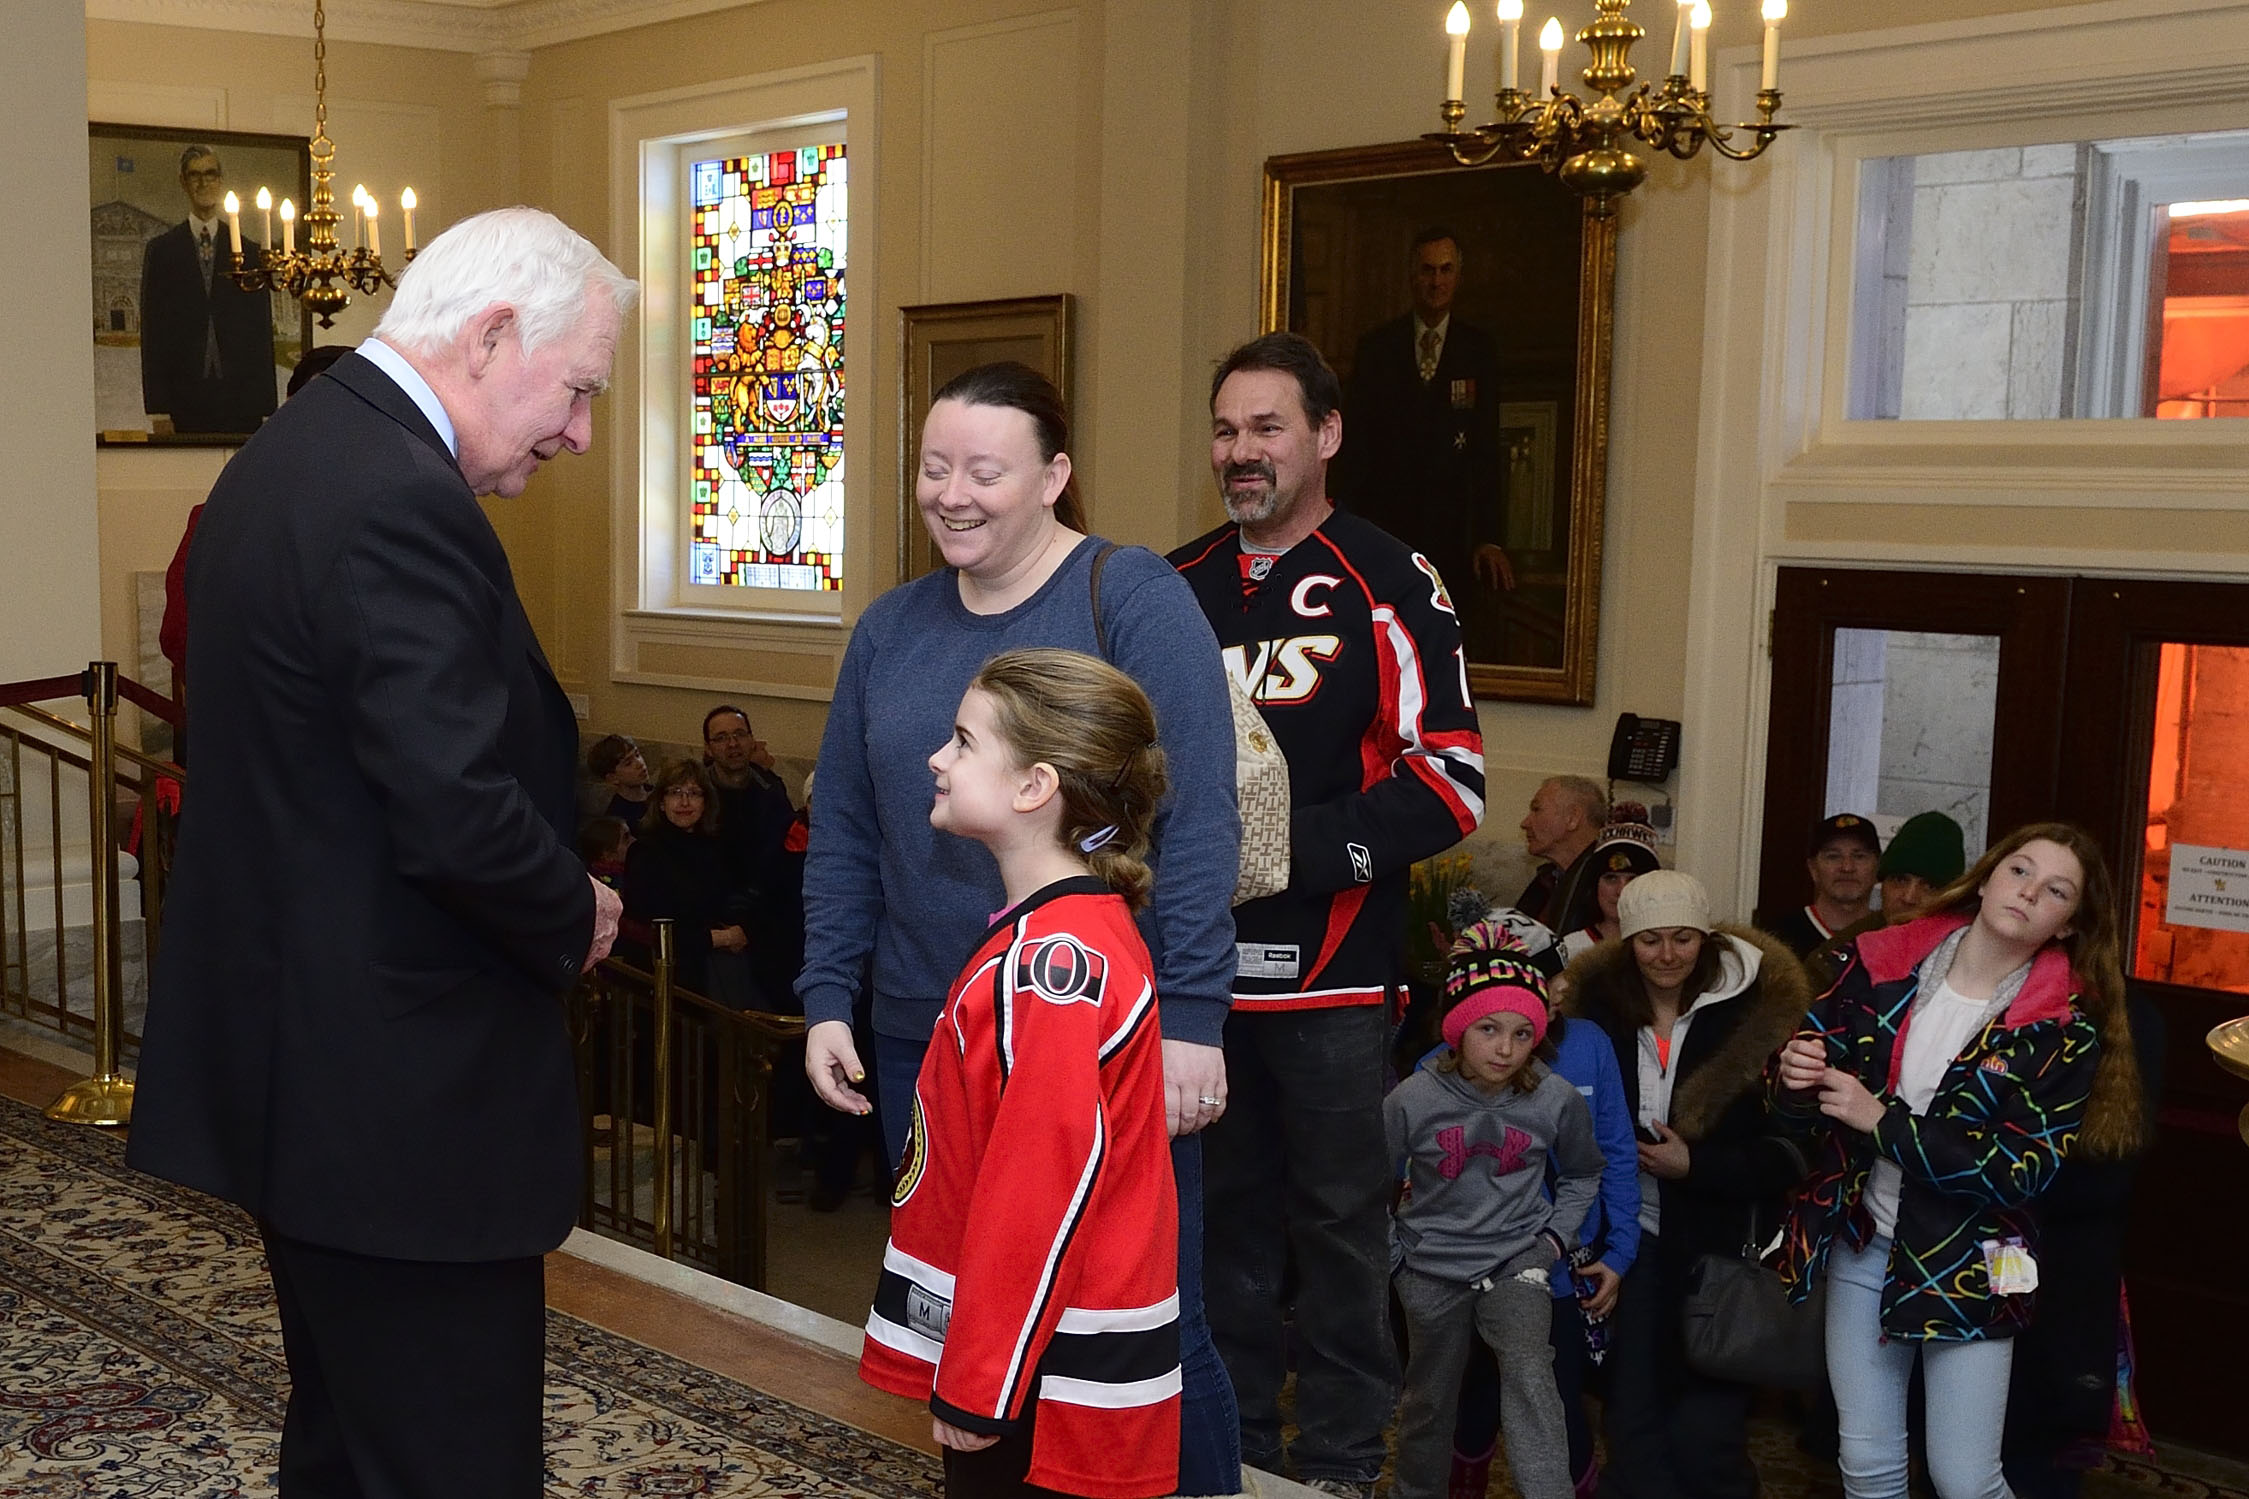 The Governor General took the time to meet with members of the public as they were waiting inside the residence to see the Stanley Cup.